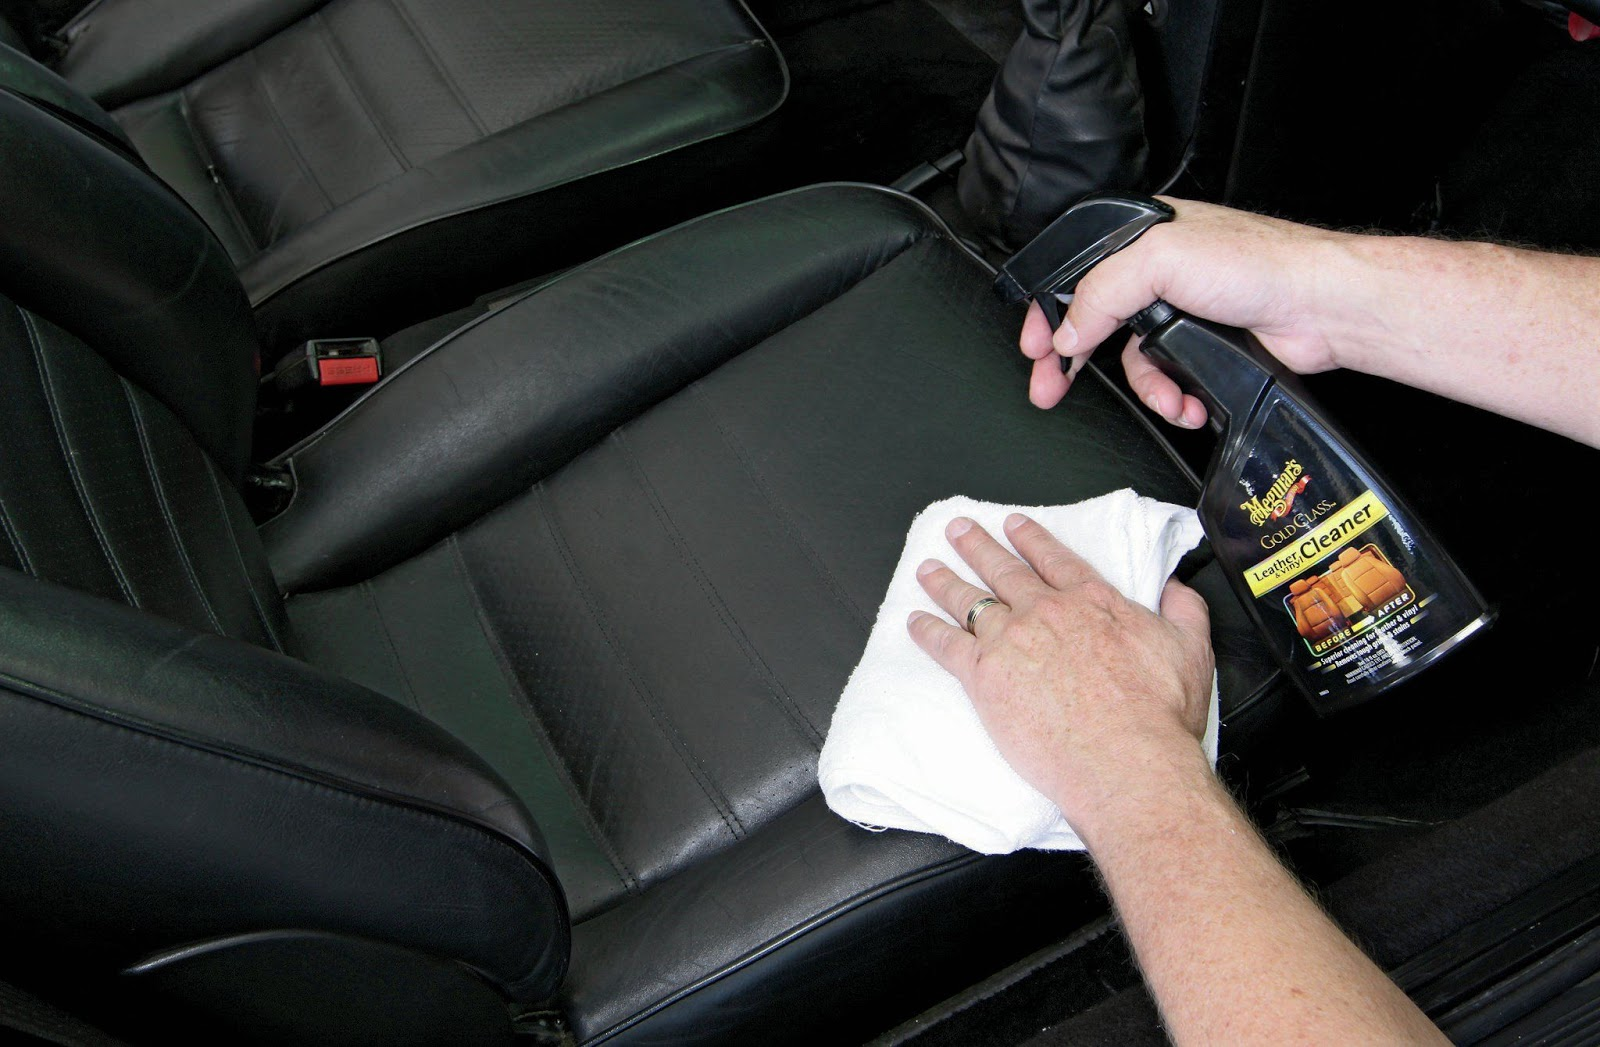 How To Take Care Of a Car's Leather Interior